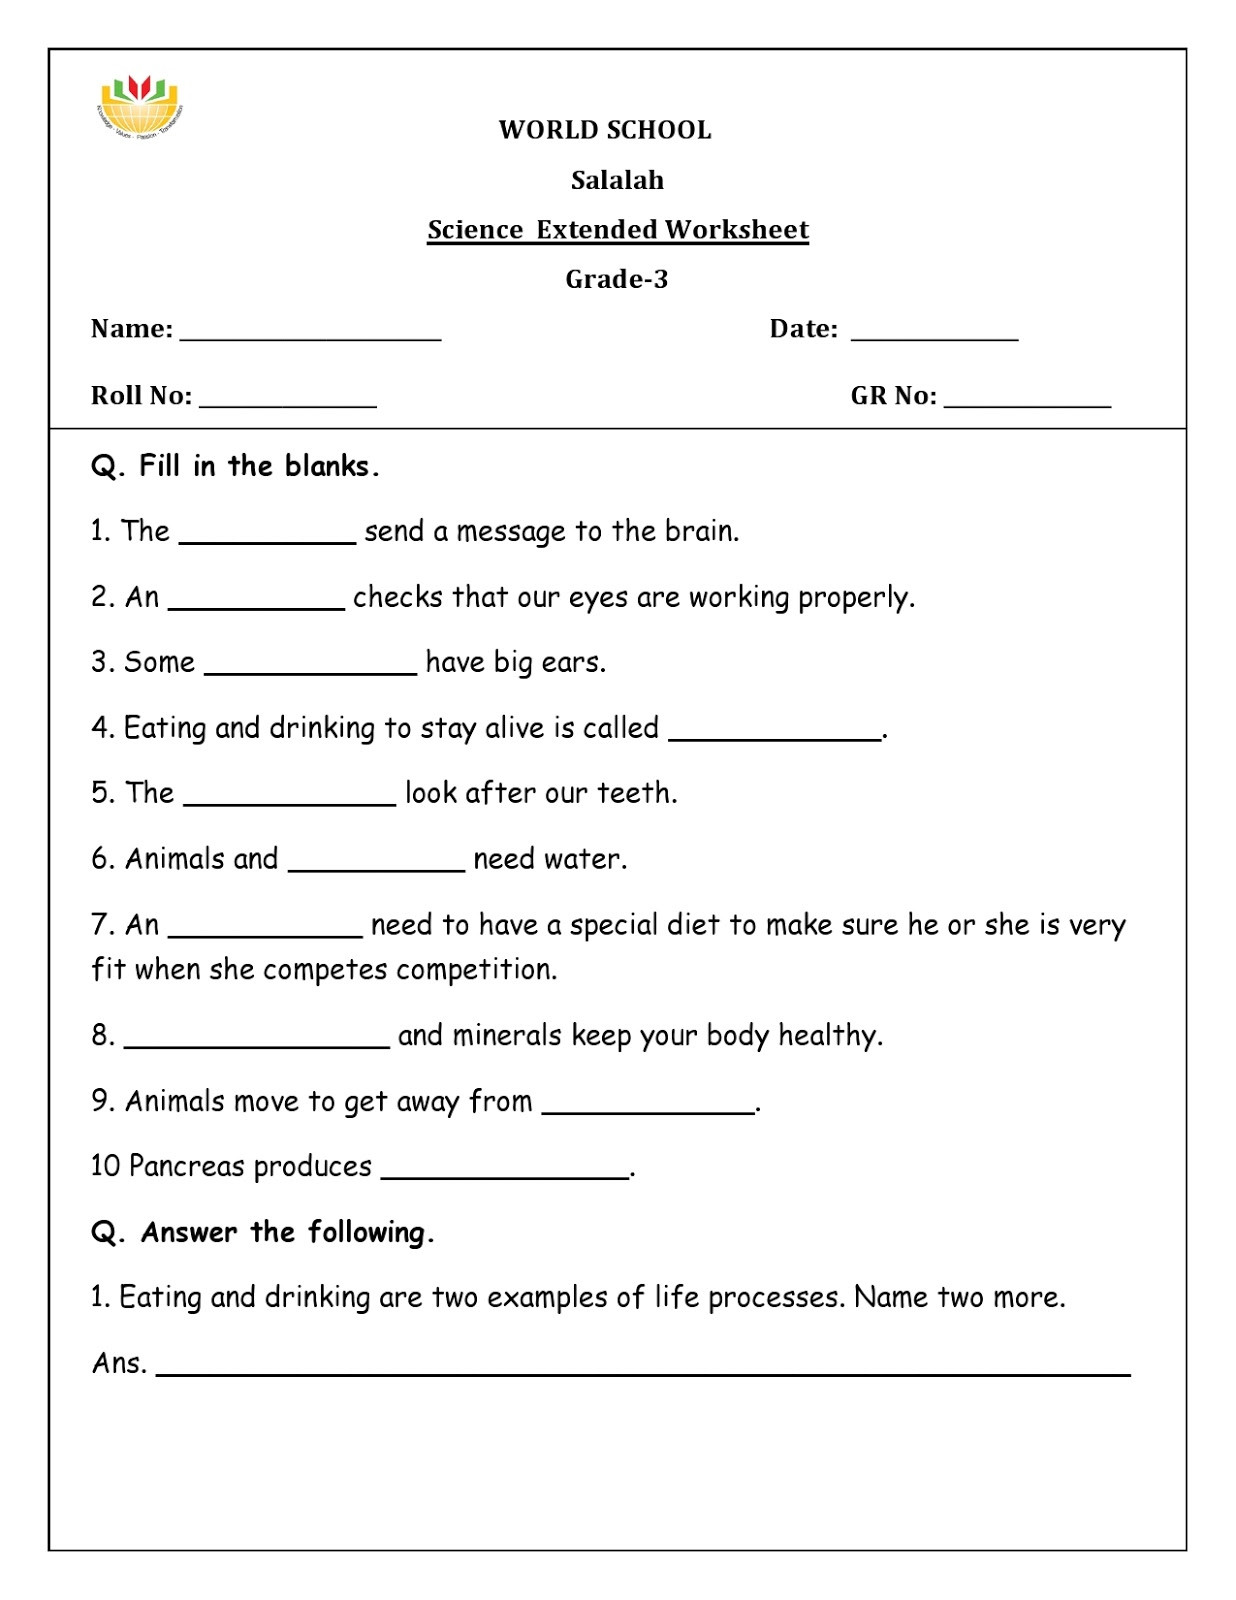 7th Grade Science Worksheets Math Basic Skills Practice Gerund and Present Participle